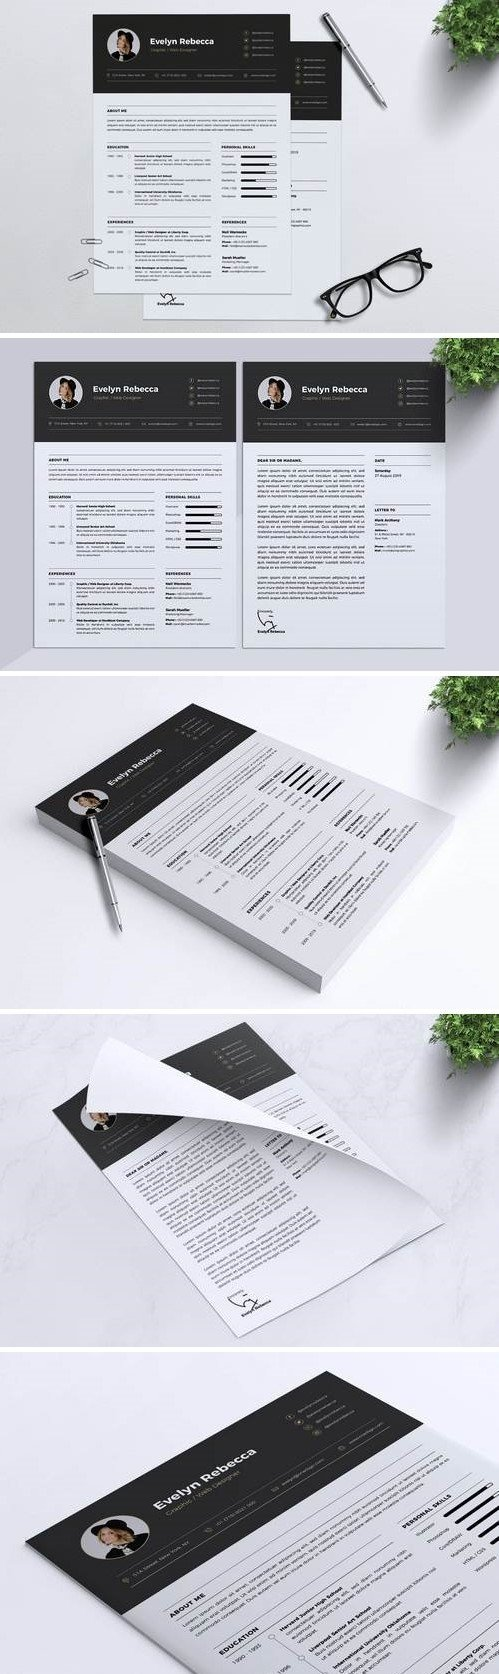 Minimalist CV Resume Vol. 07